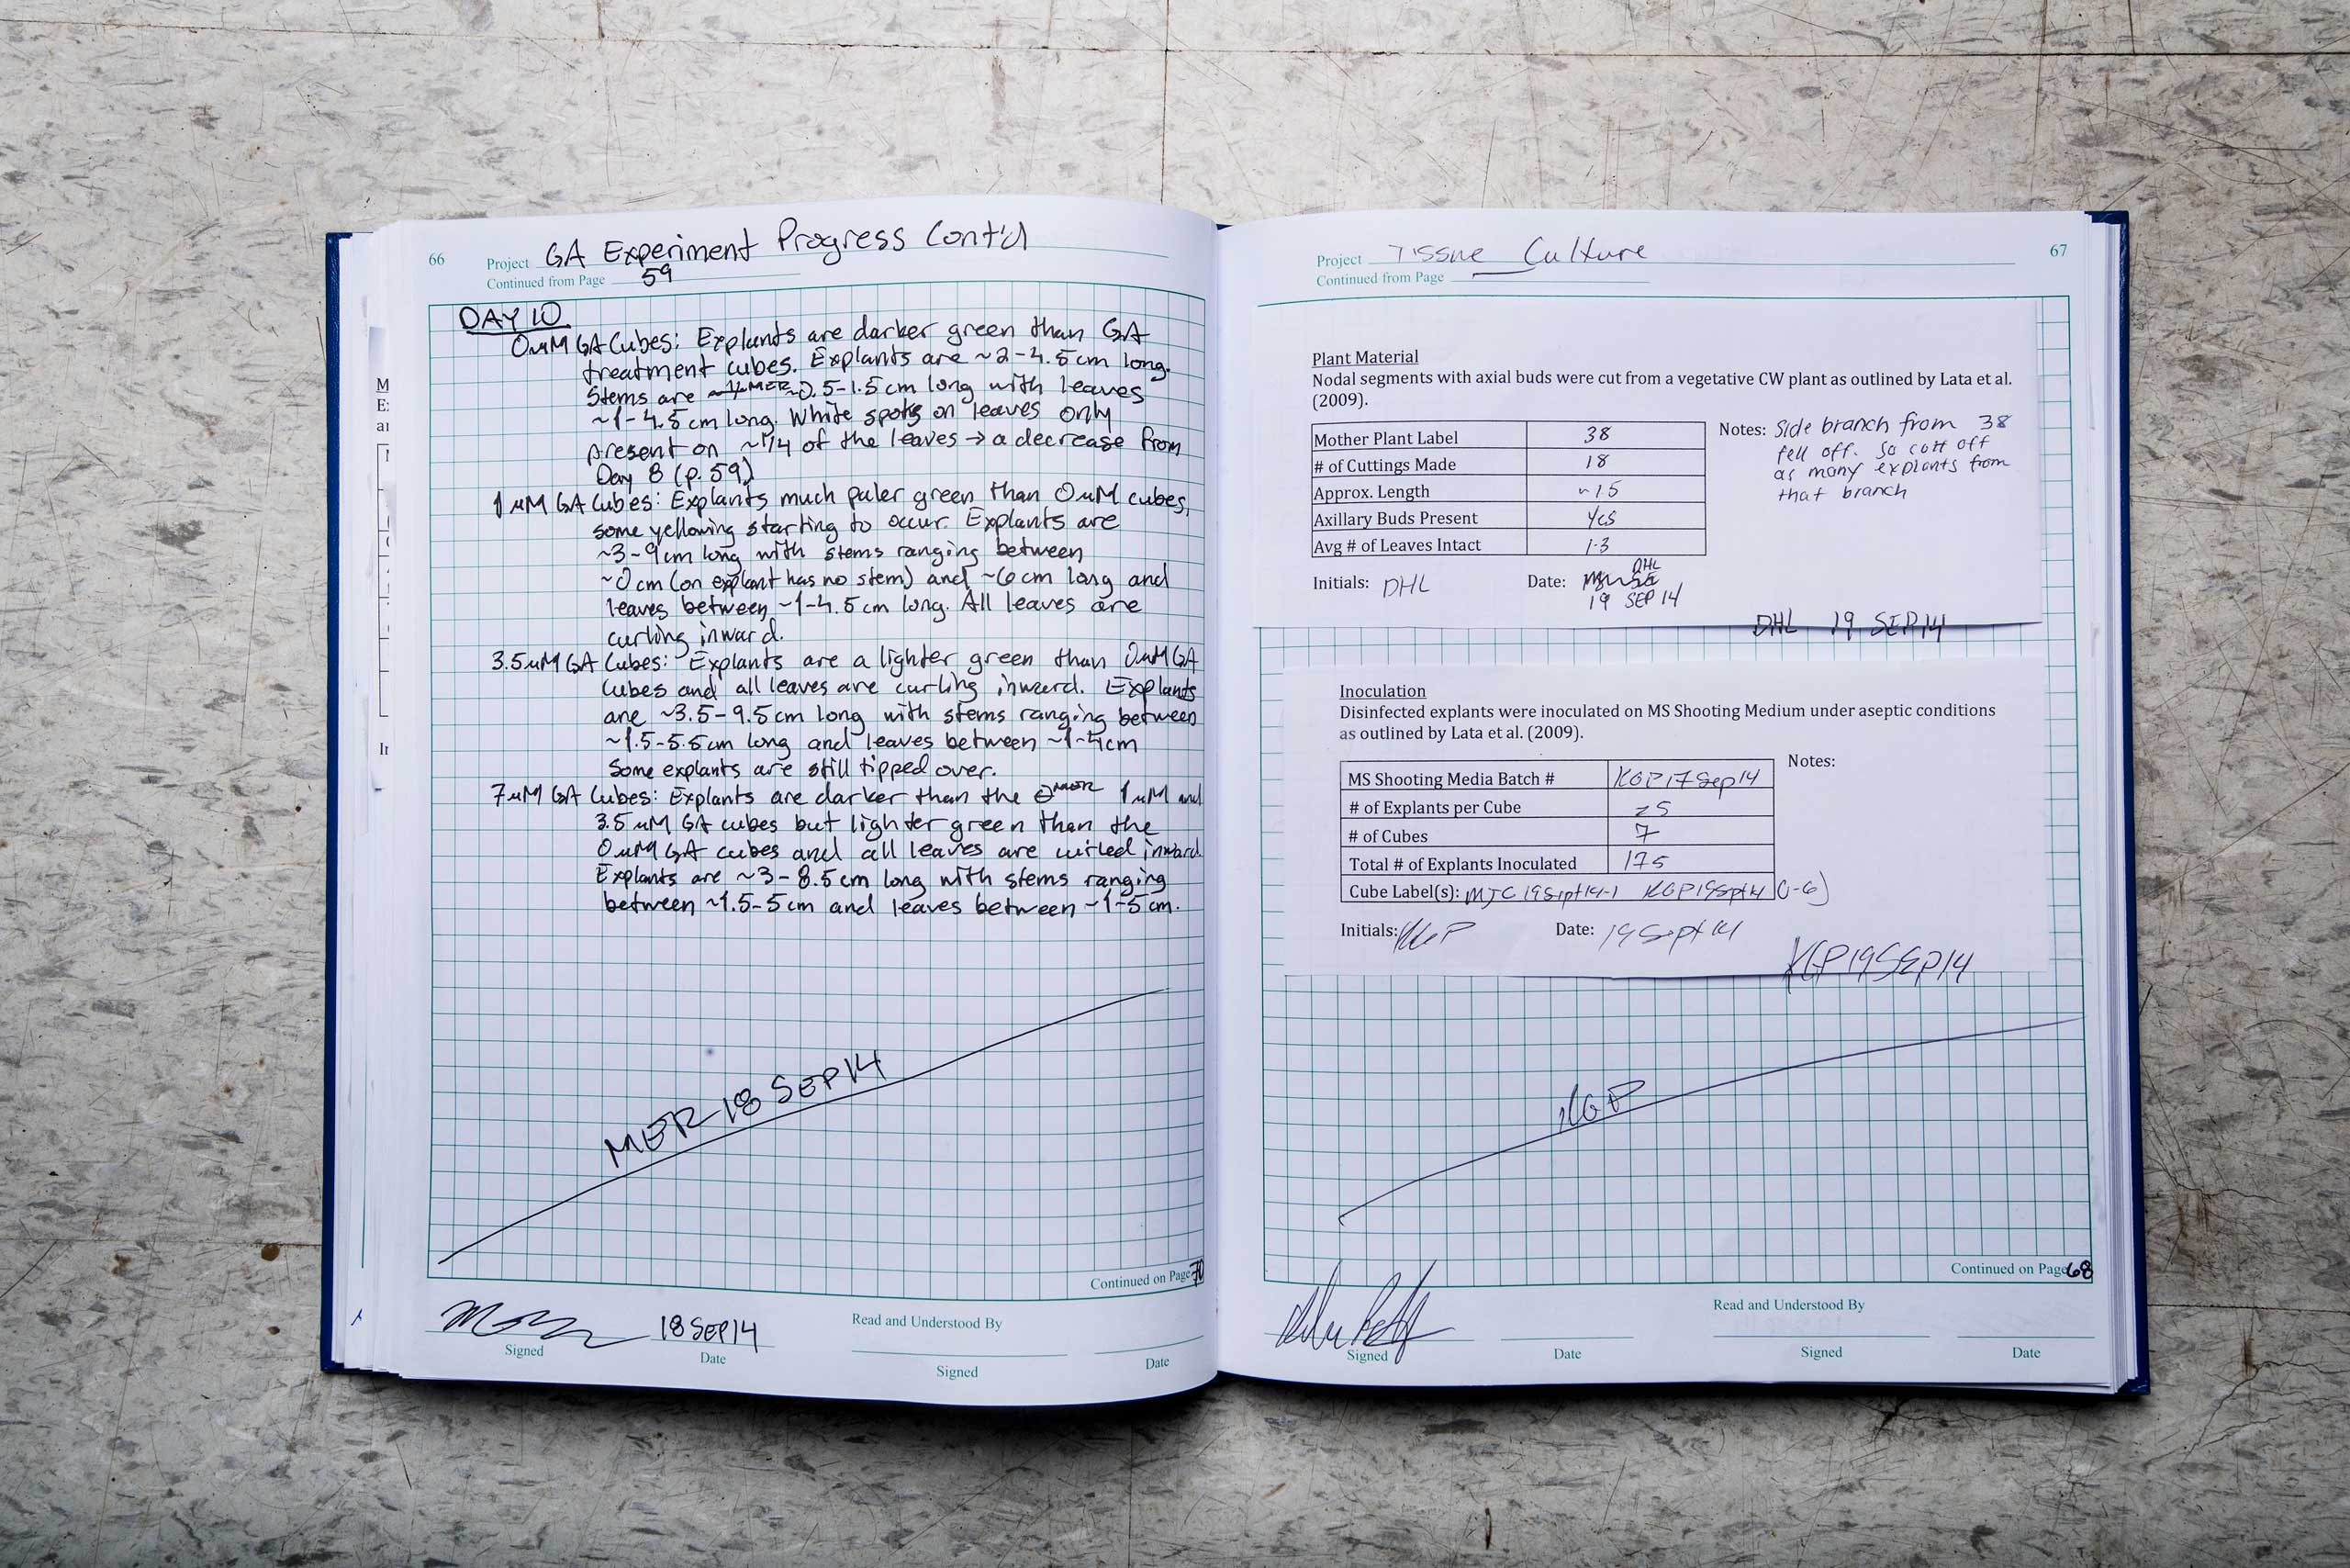 The lab notebook of molecular plant biologist and lab manager Bear Reel at the Stanley brothers' company laboratory in Boulder, Colo. on Sept. 23, 2014.